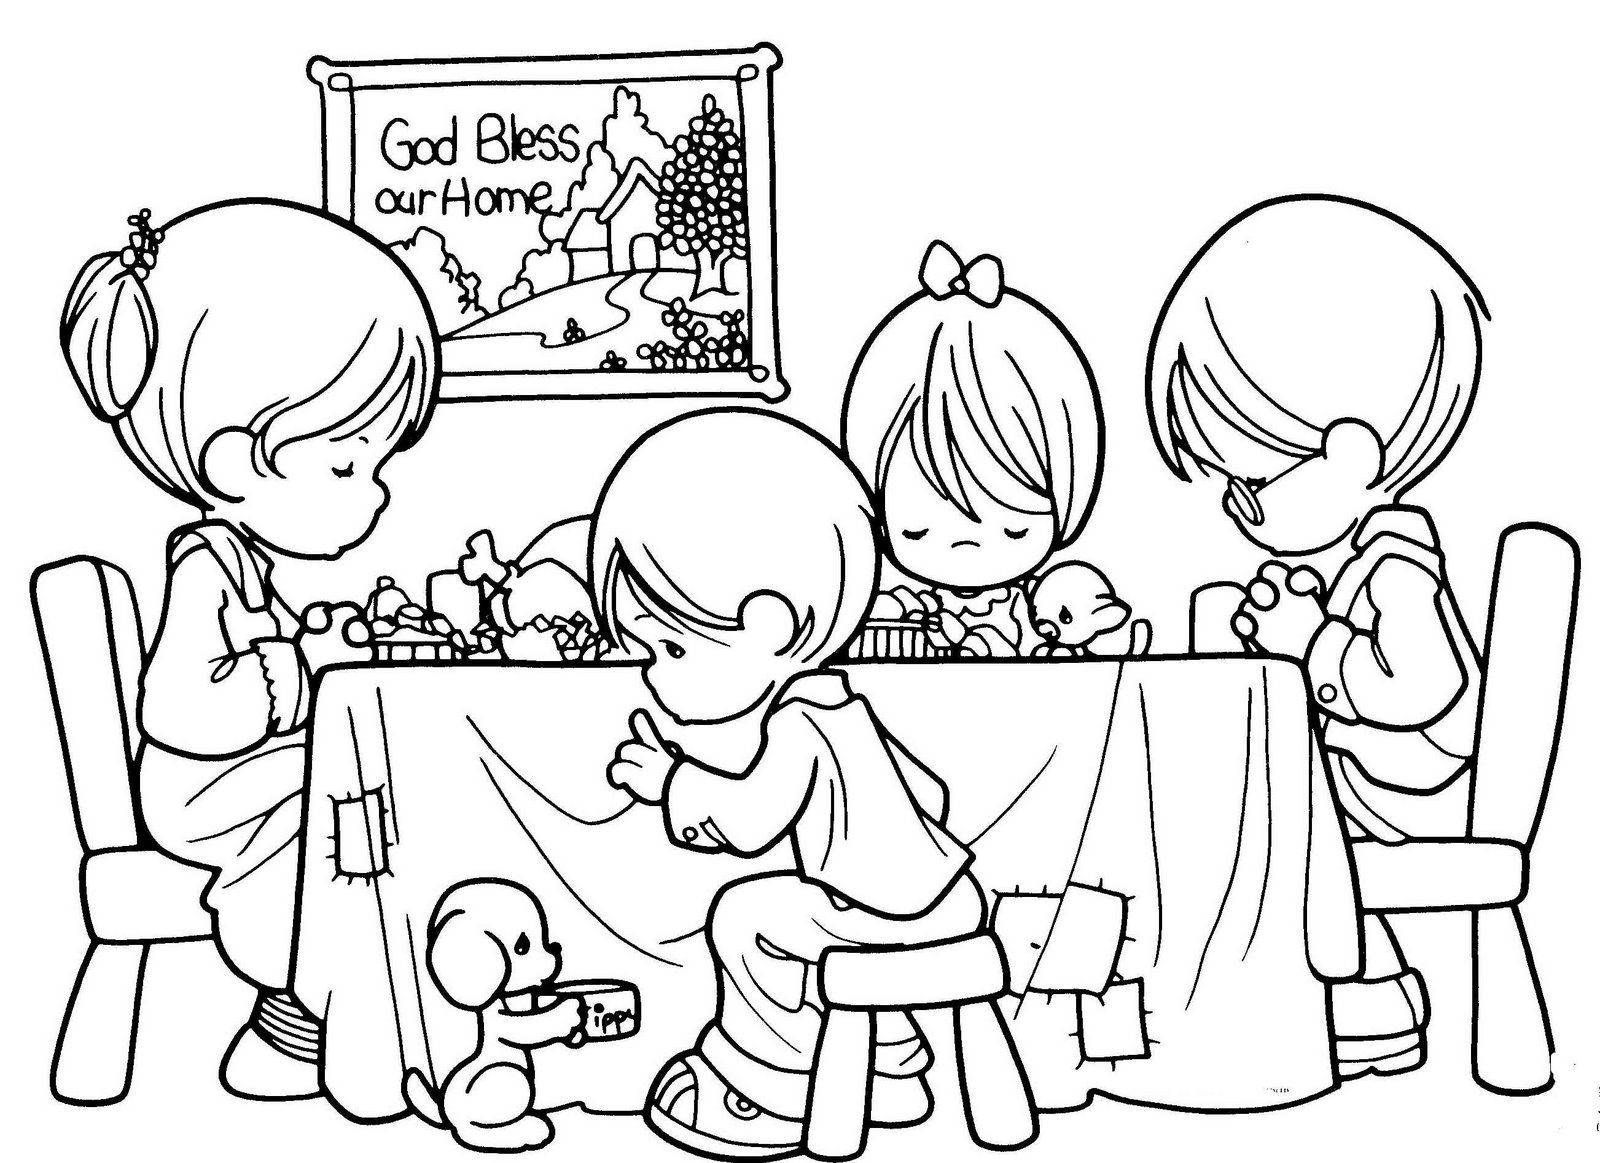 free christian coloring pages - free printable christian coloring pages kids